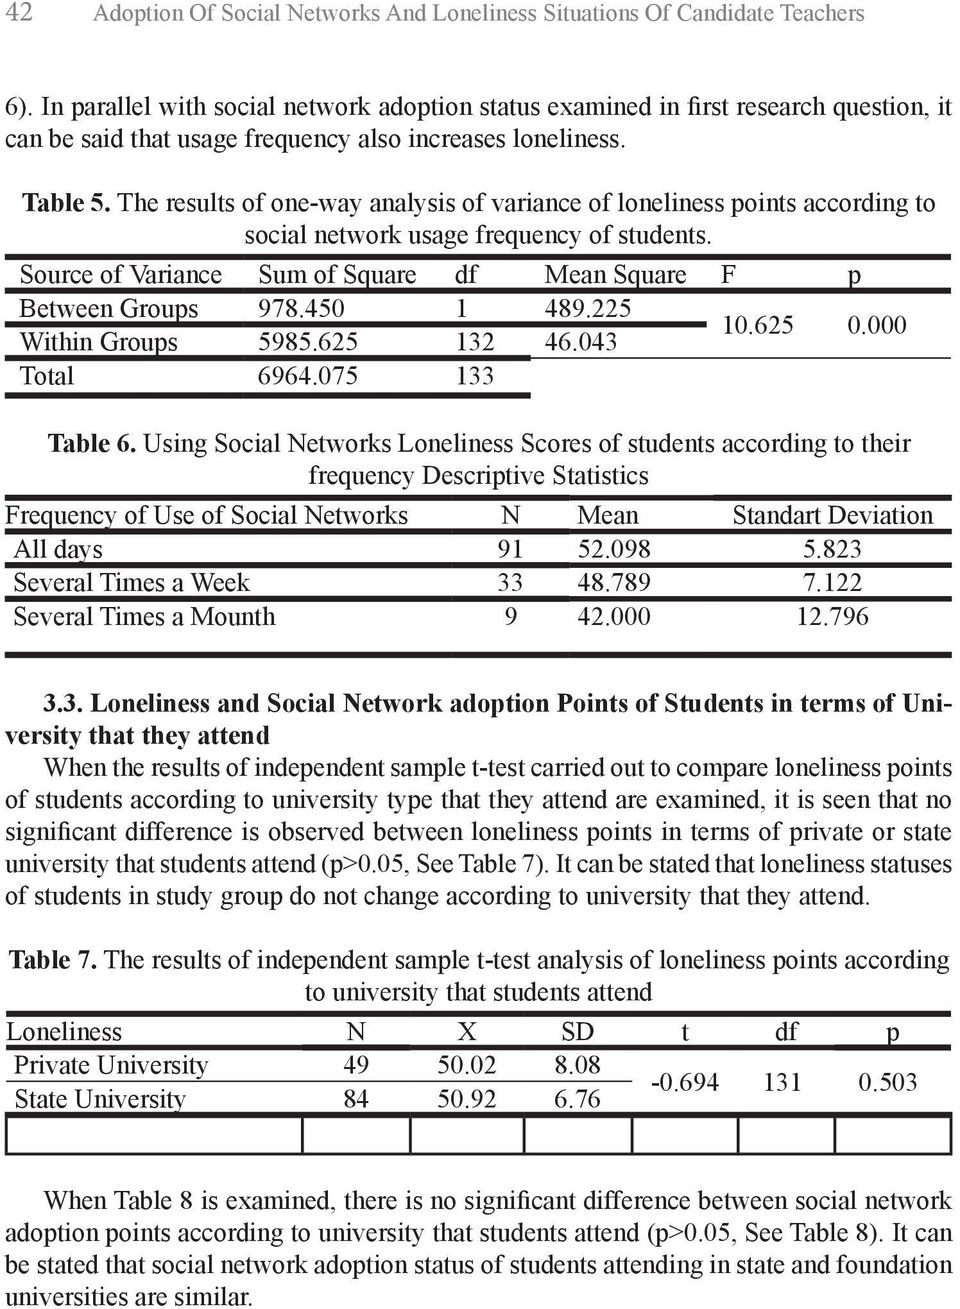 The results of one-way analysis of variance of loneliness points according to social network usage frequency of students. Source of Variance Sum of Square df Mean Square F p Between Groups 978.